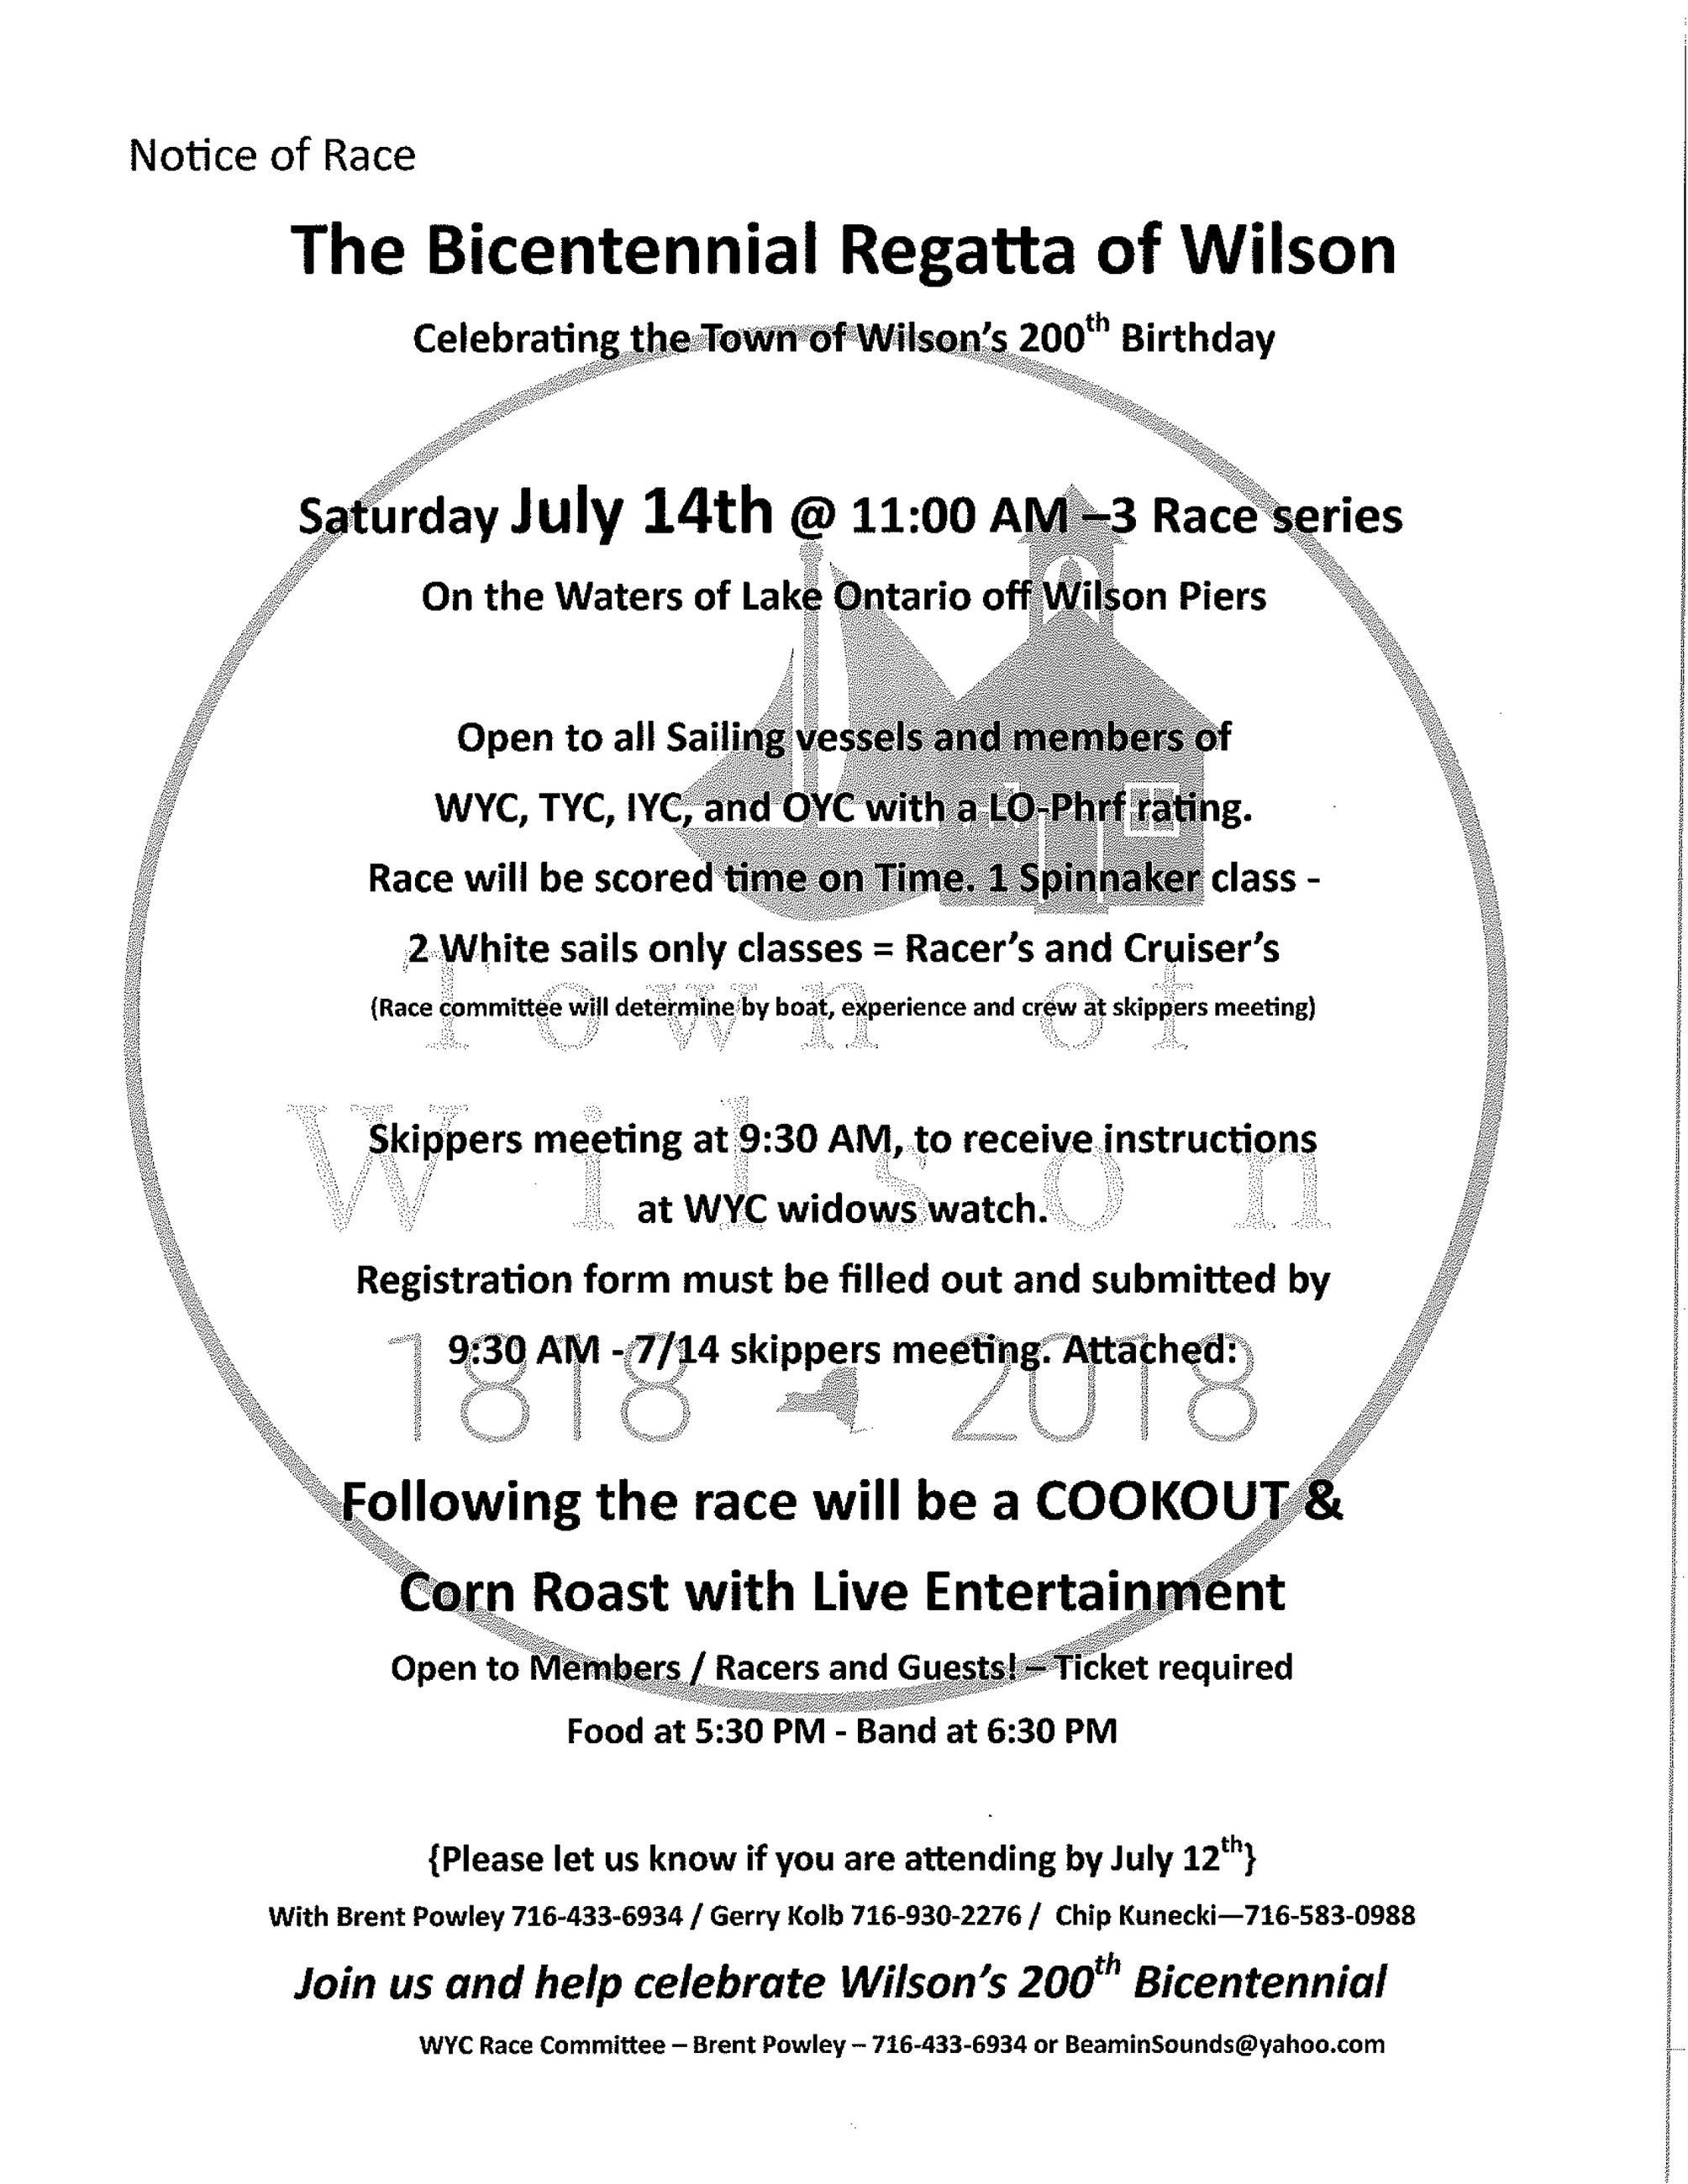 Bicentennial Regatta  of Wilson July 14th 2018